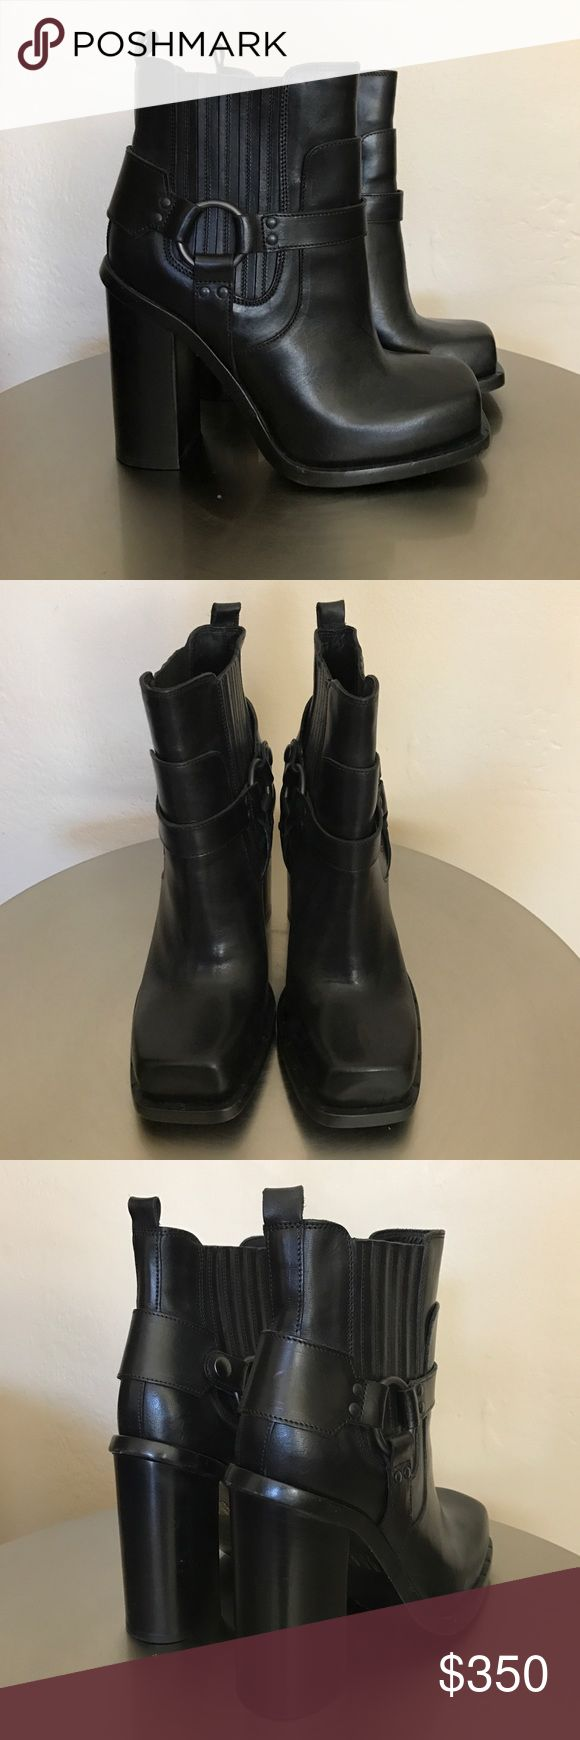 Diesel Black|Gold moto boot Black harness moto boot. Diesels high end black|gold line. Worn once. Near perfect condition. No trades. Women's size 8. Diesel Black Gold Shoes